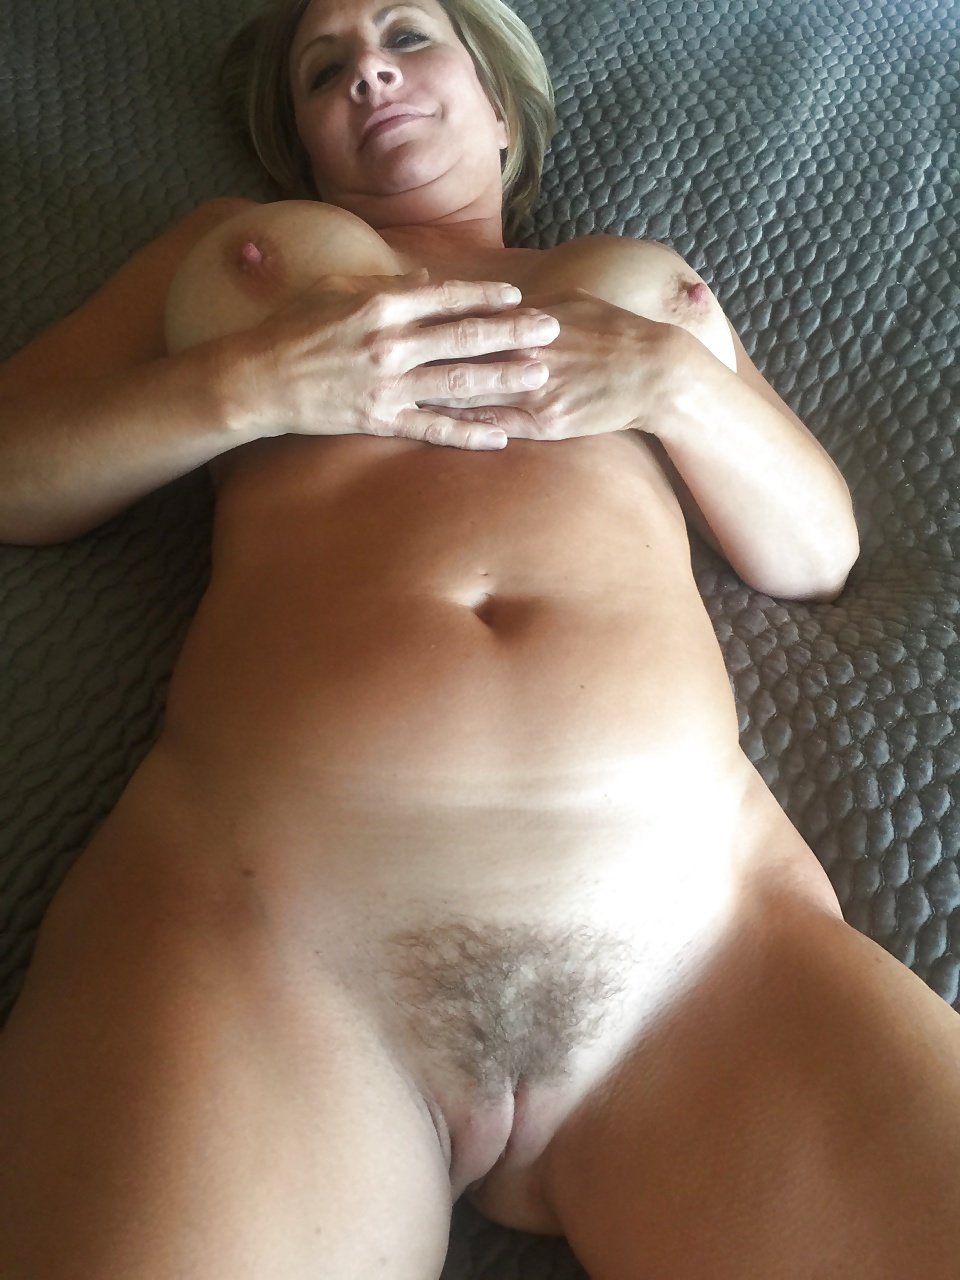 Hairy mature nude selfies — pic 5